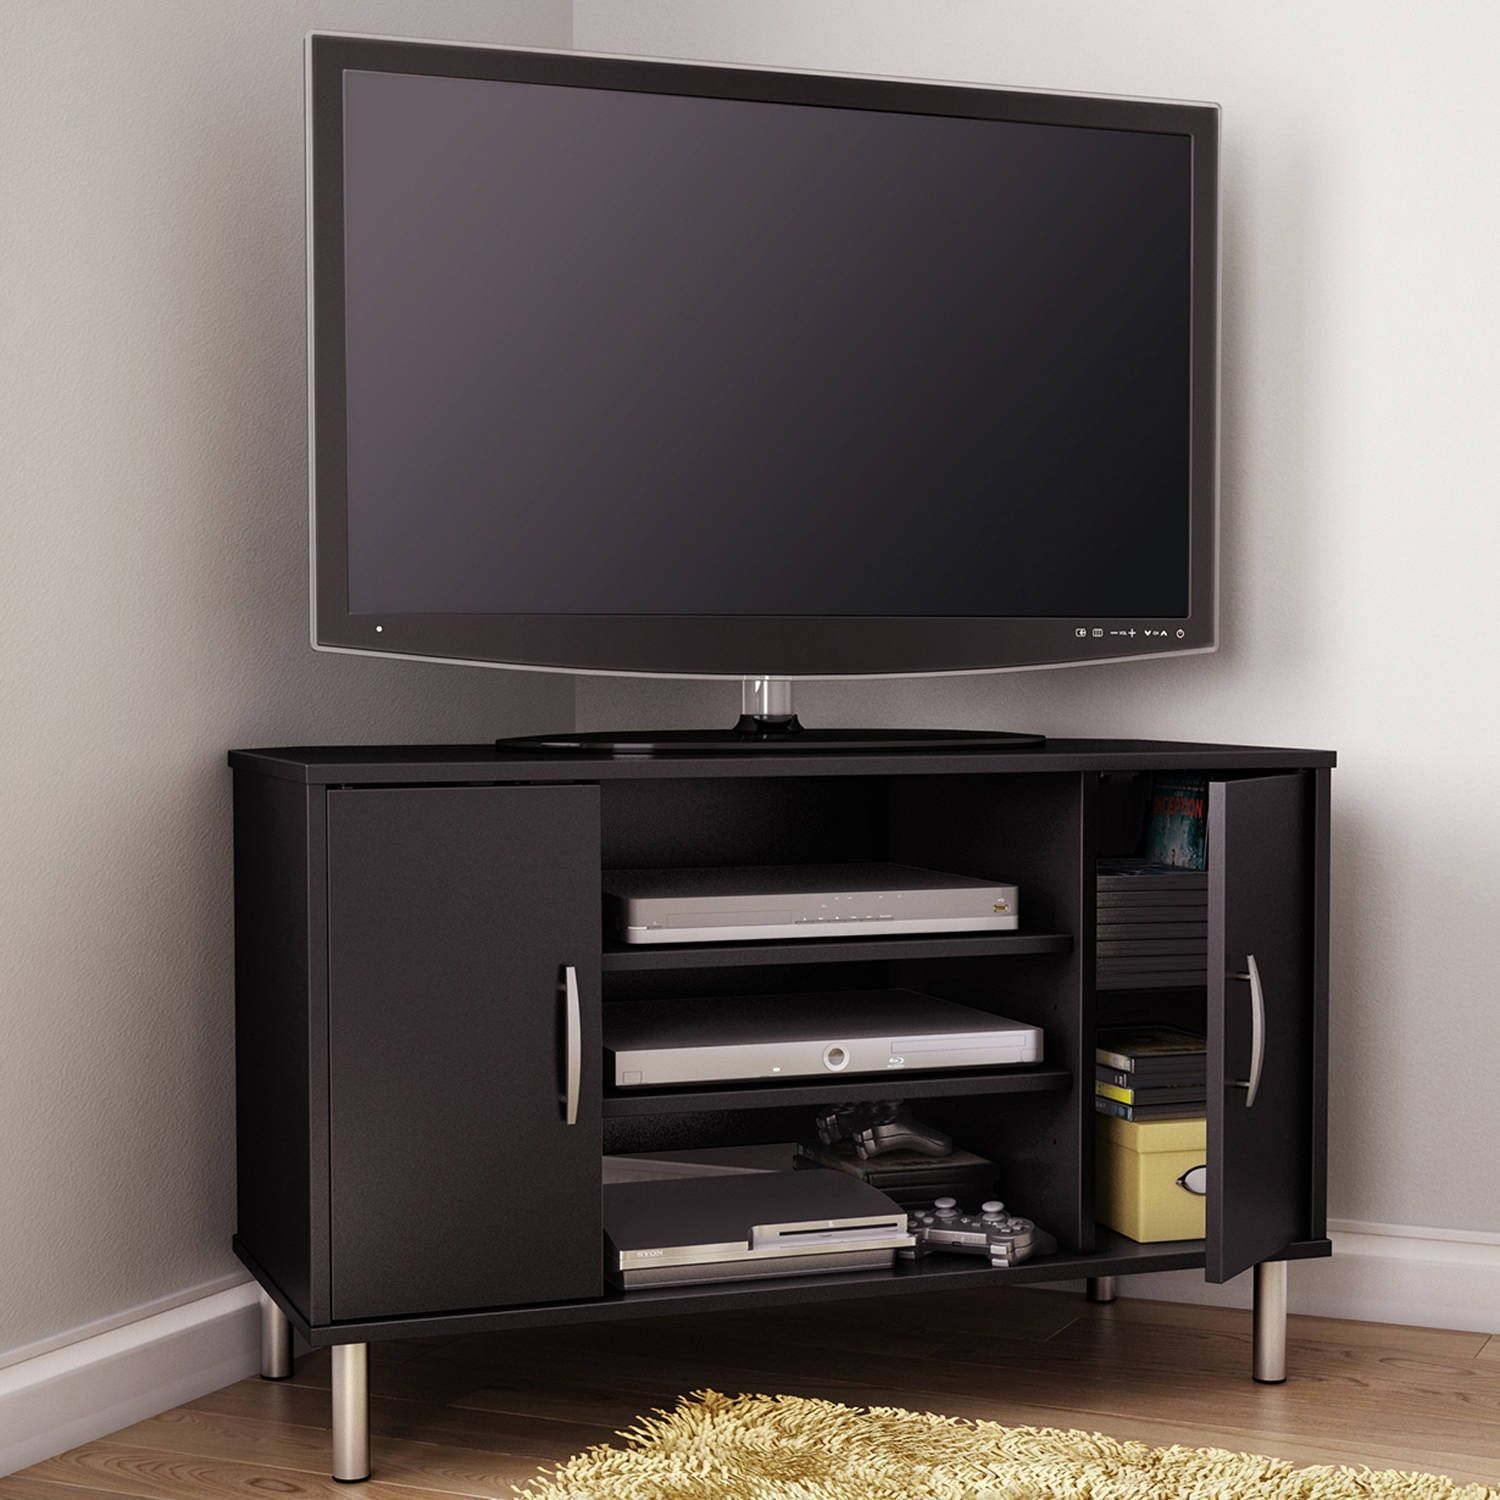 south shore renta corner tv stand for tvs up to 42 inch multiple finishes black - Corner Tv Stands 50 Inch